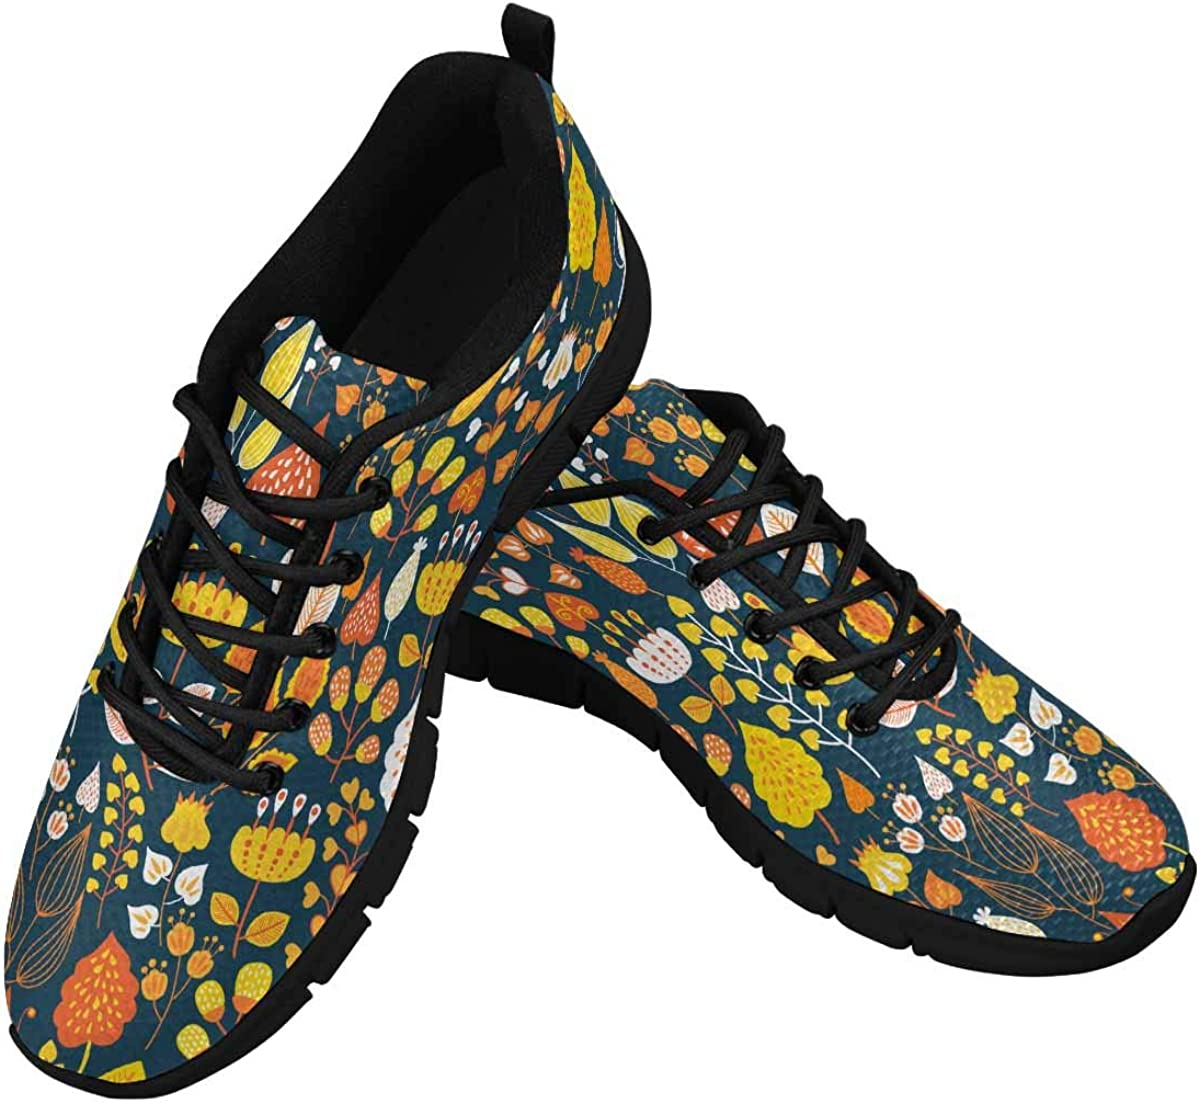 INTERESTPRINT Autumn Floral and Flower Background Women's Sneaker Lace Up Running Comfort Sports Shoes